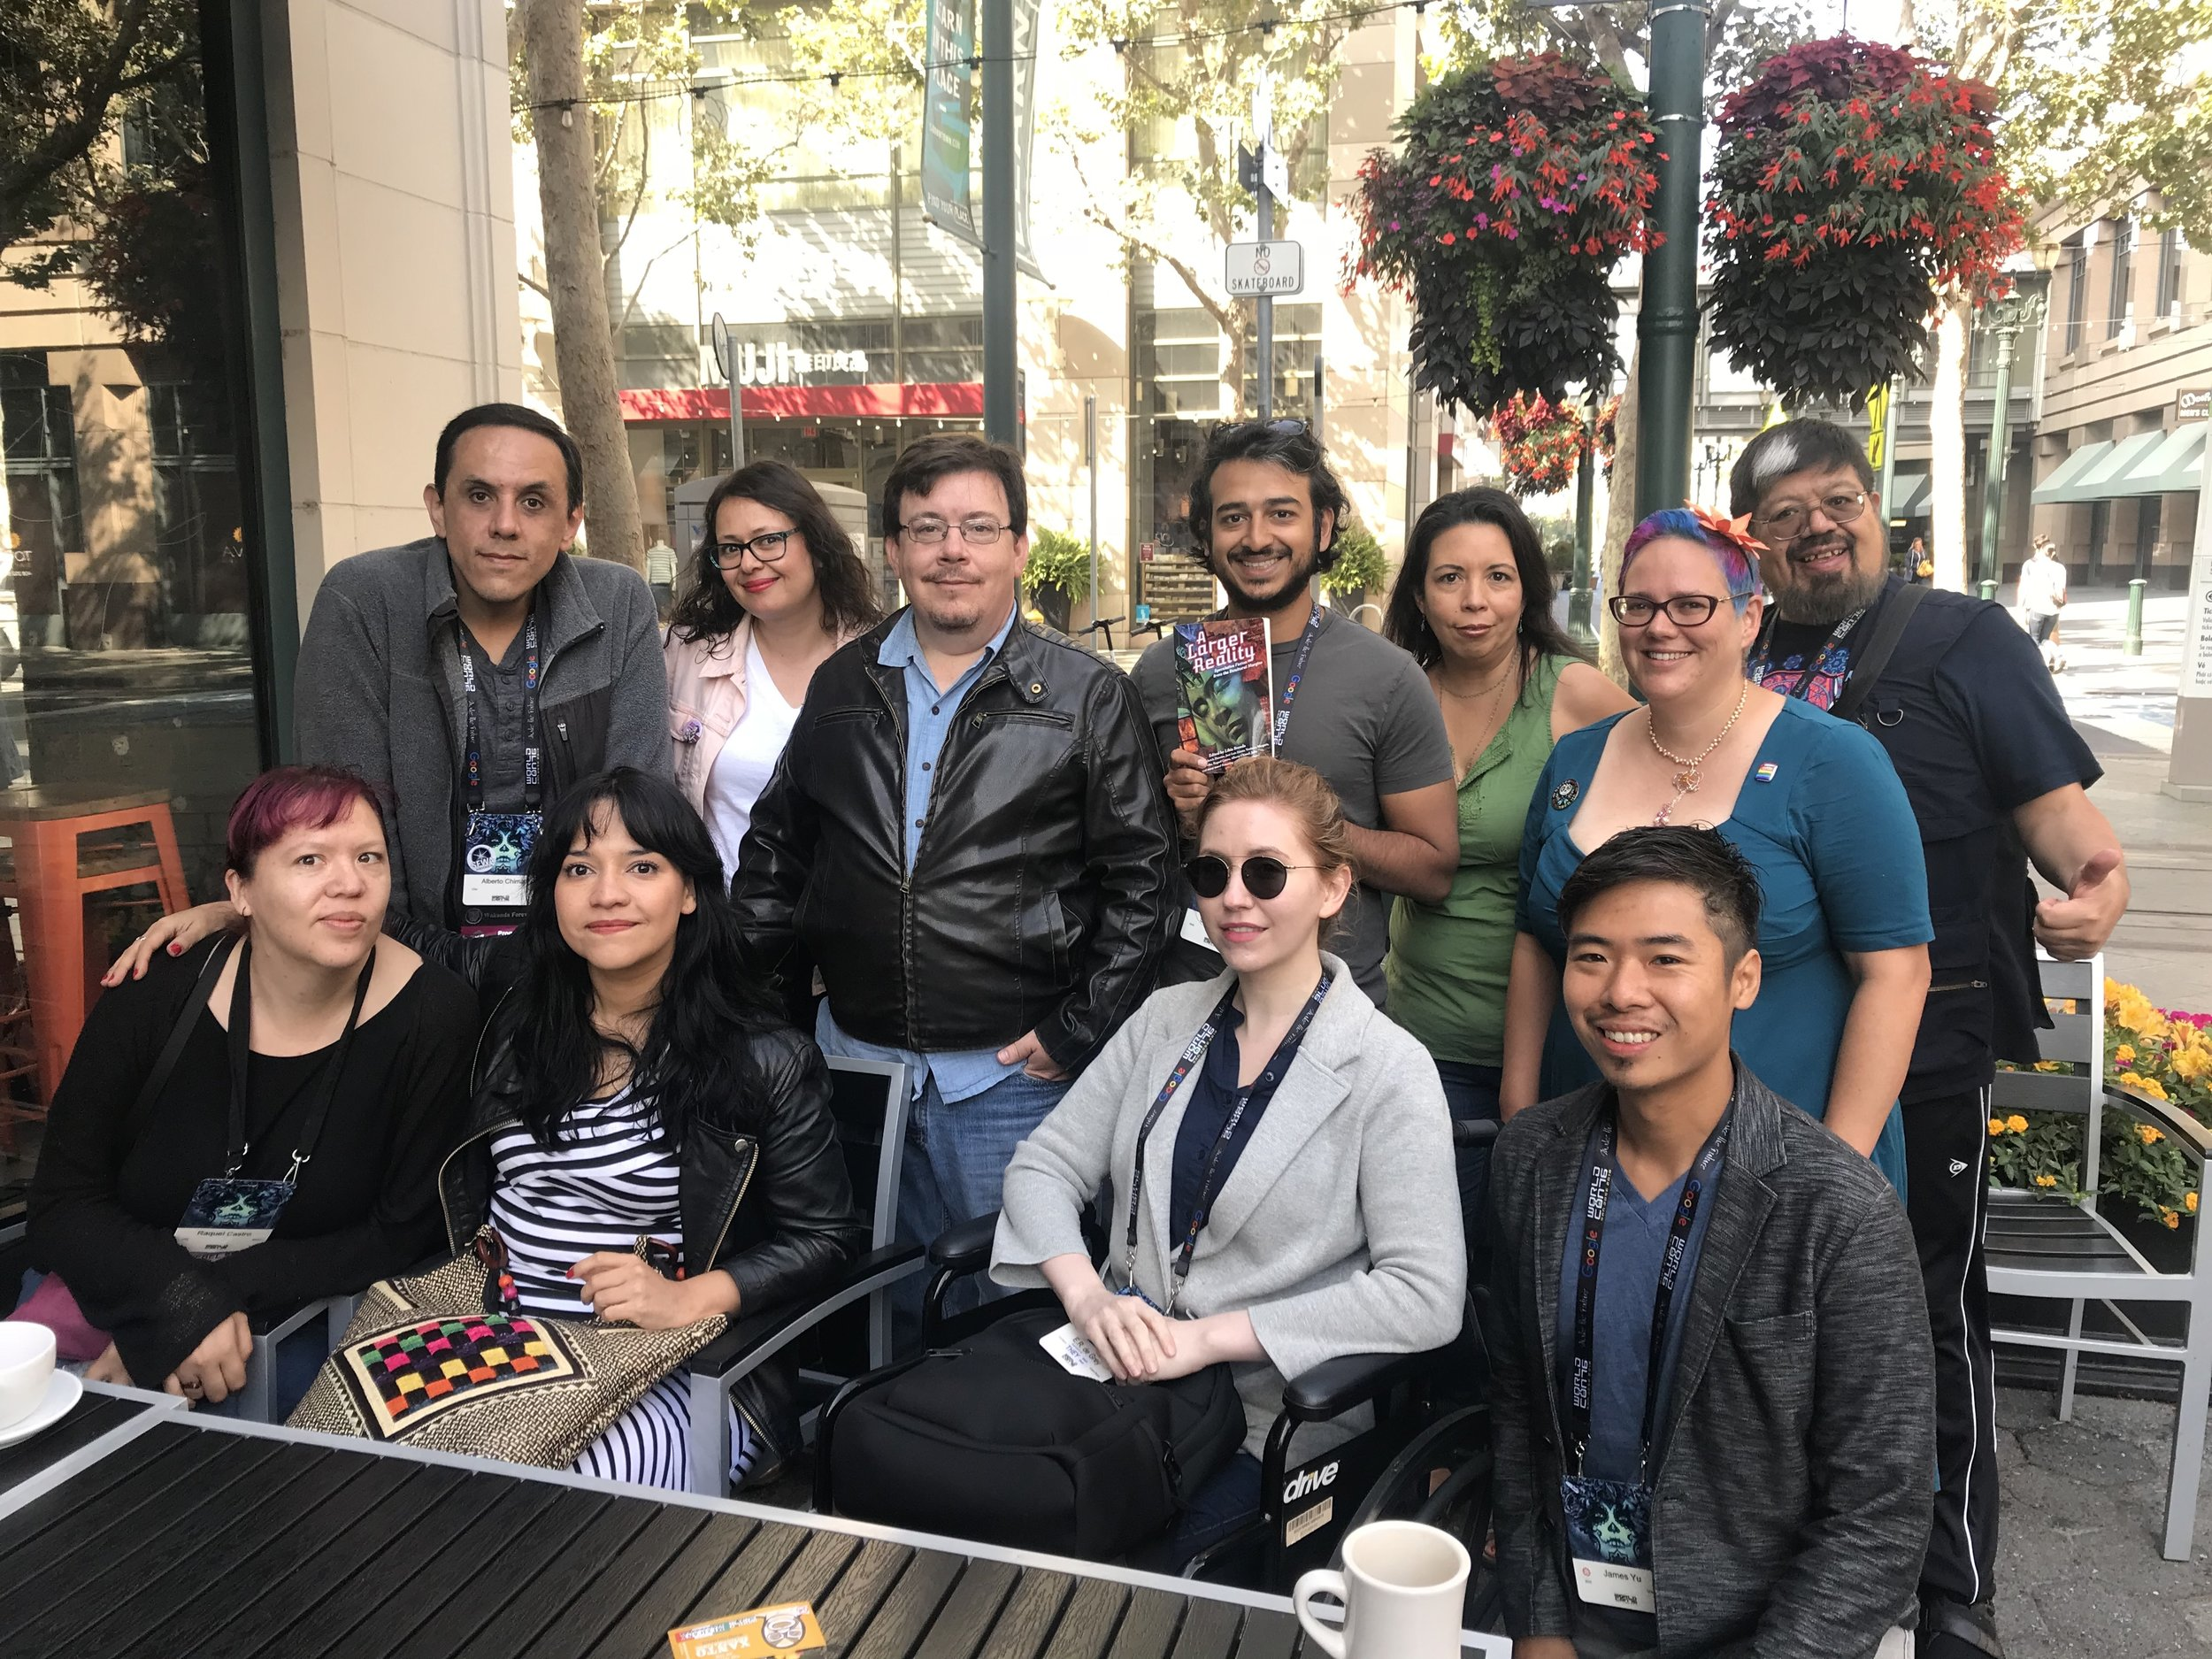 Mexicanx Initiative members meet with Kickstarter backers to thank them for backing A Larger Reality / Una realidad más amplia